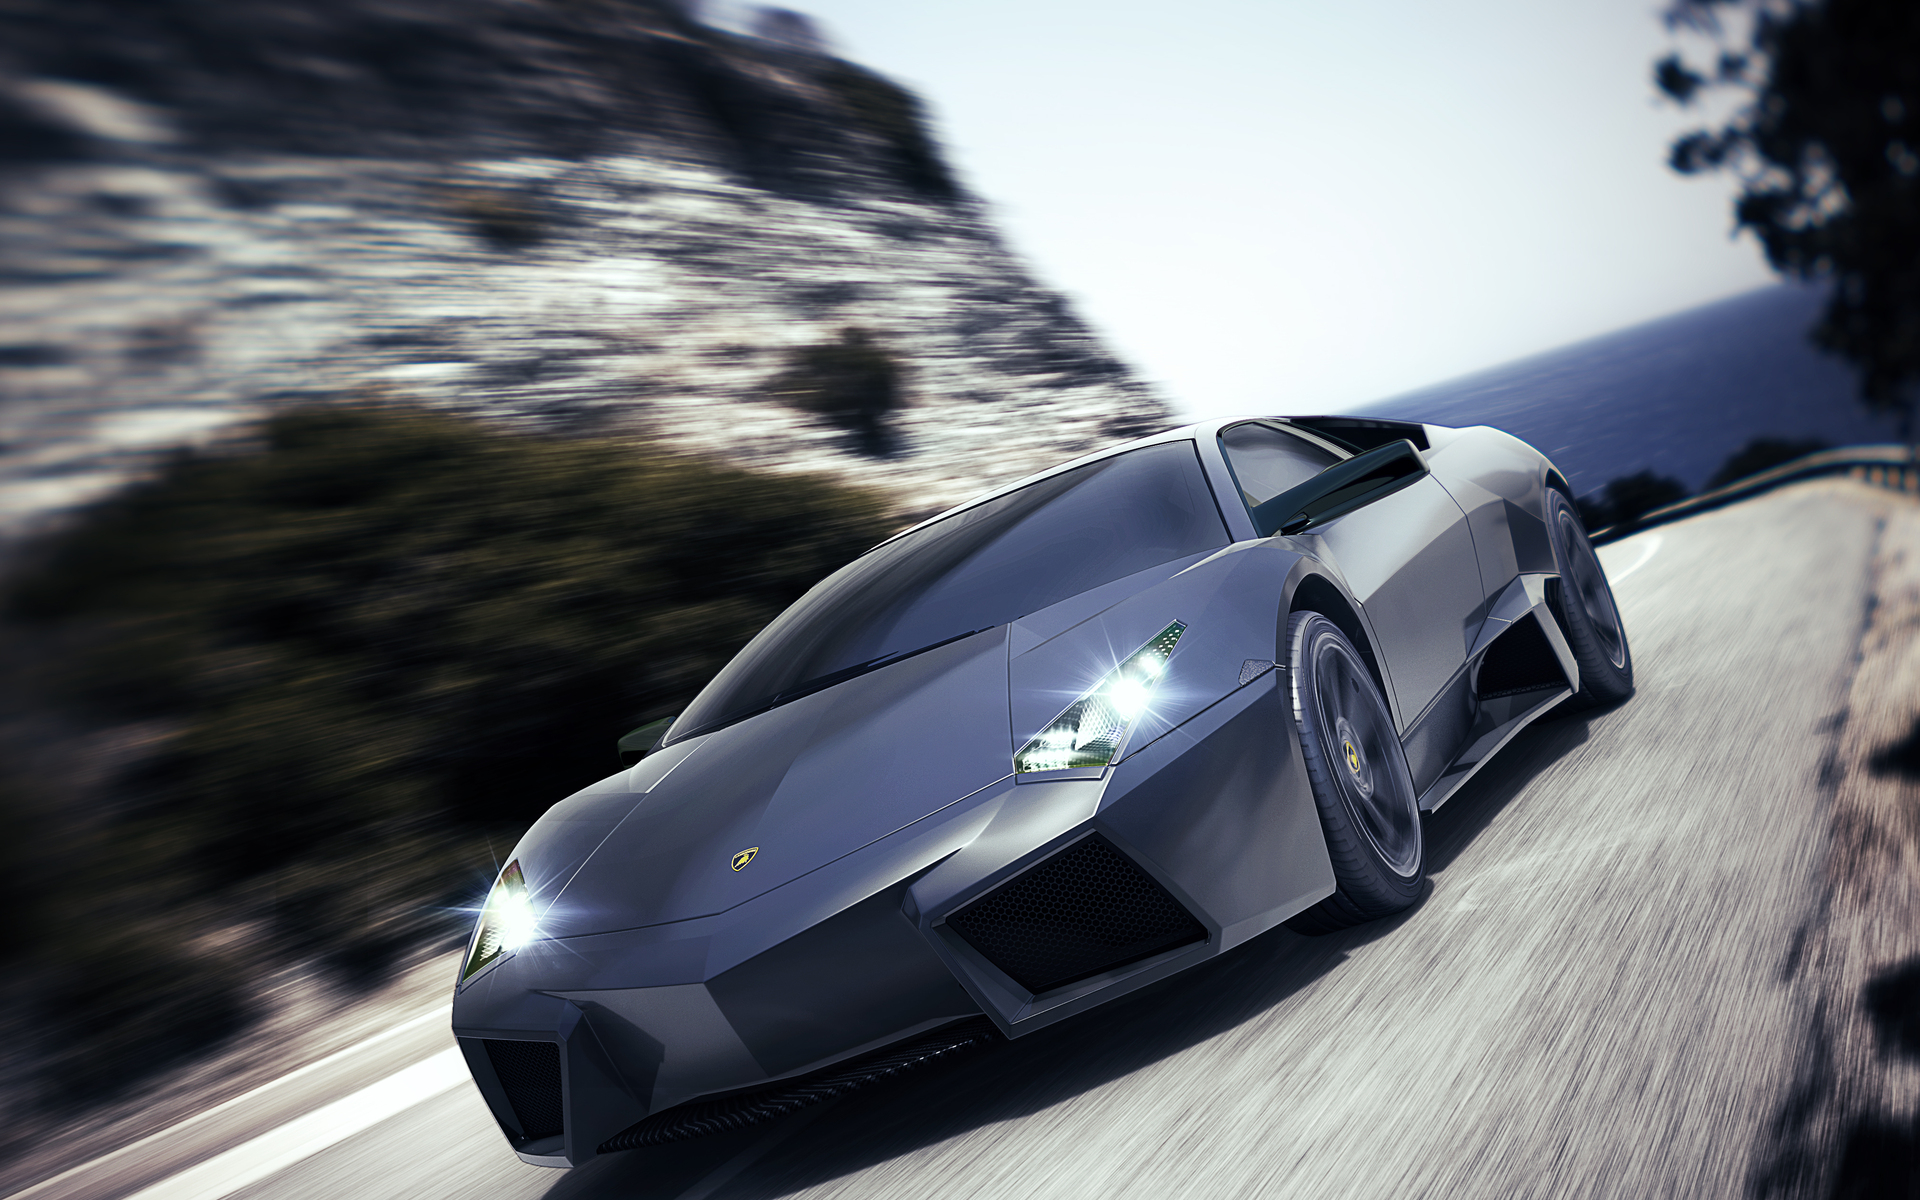 Full Hd Sports Car Wallpapers: New Lamborghini Reventon Sports Wallpaper